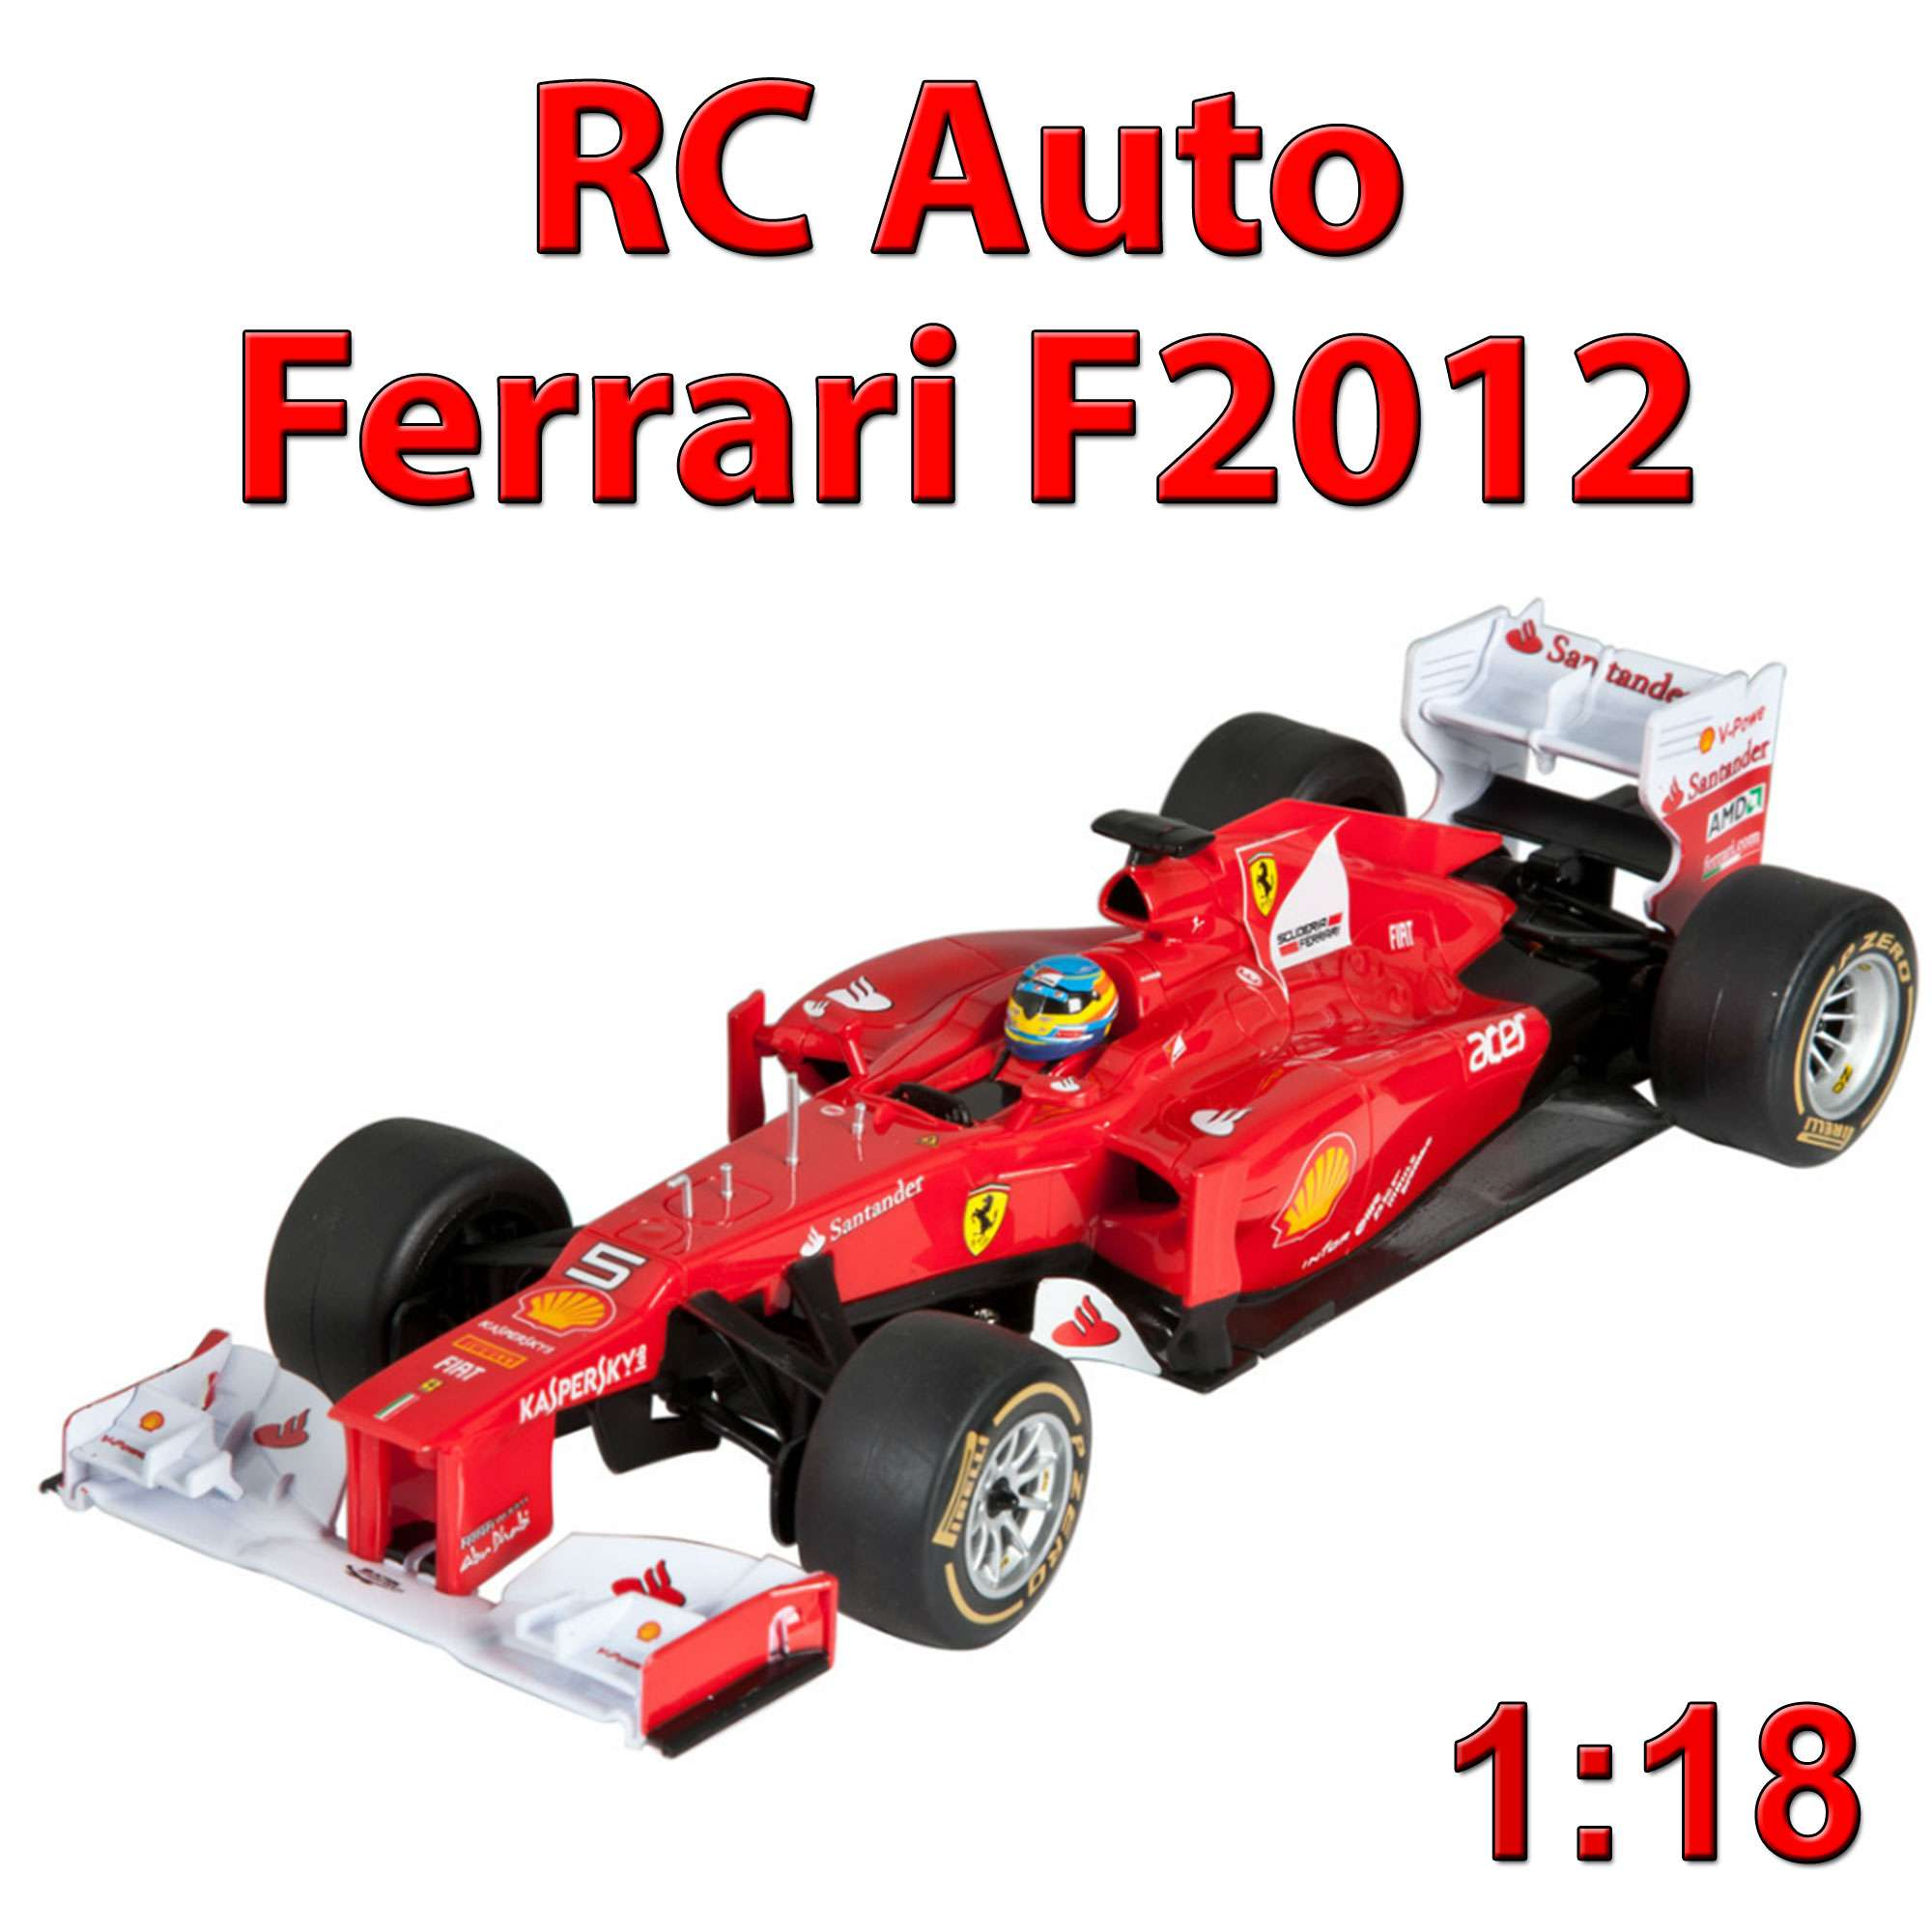 f1 ferrari f2012 von alonso rc ferngesteuertes formel 1. Black Bedroom Furniture Sets. Home Design Ideas